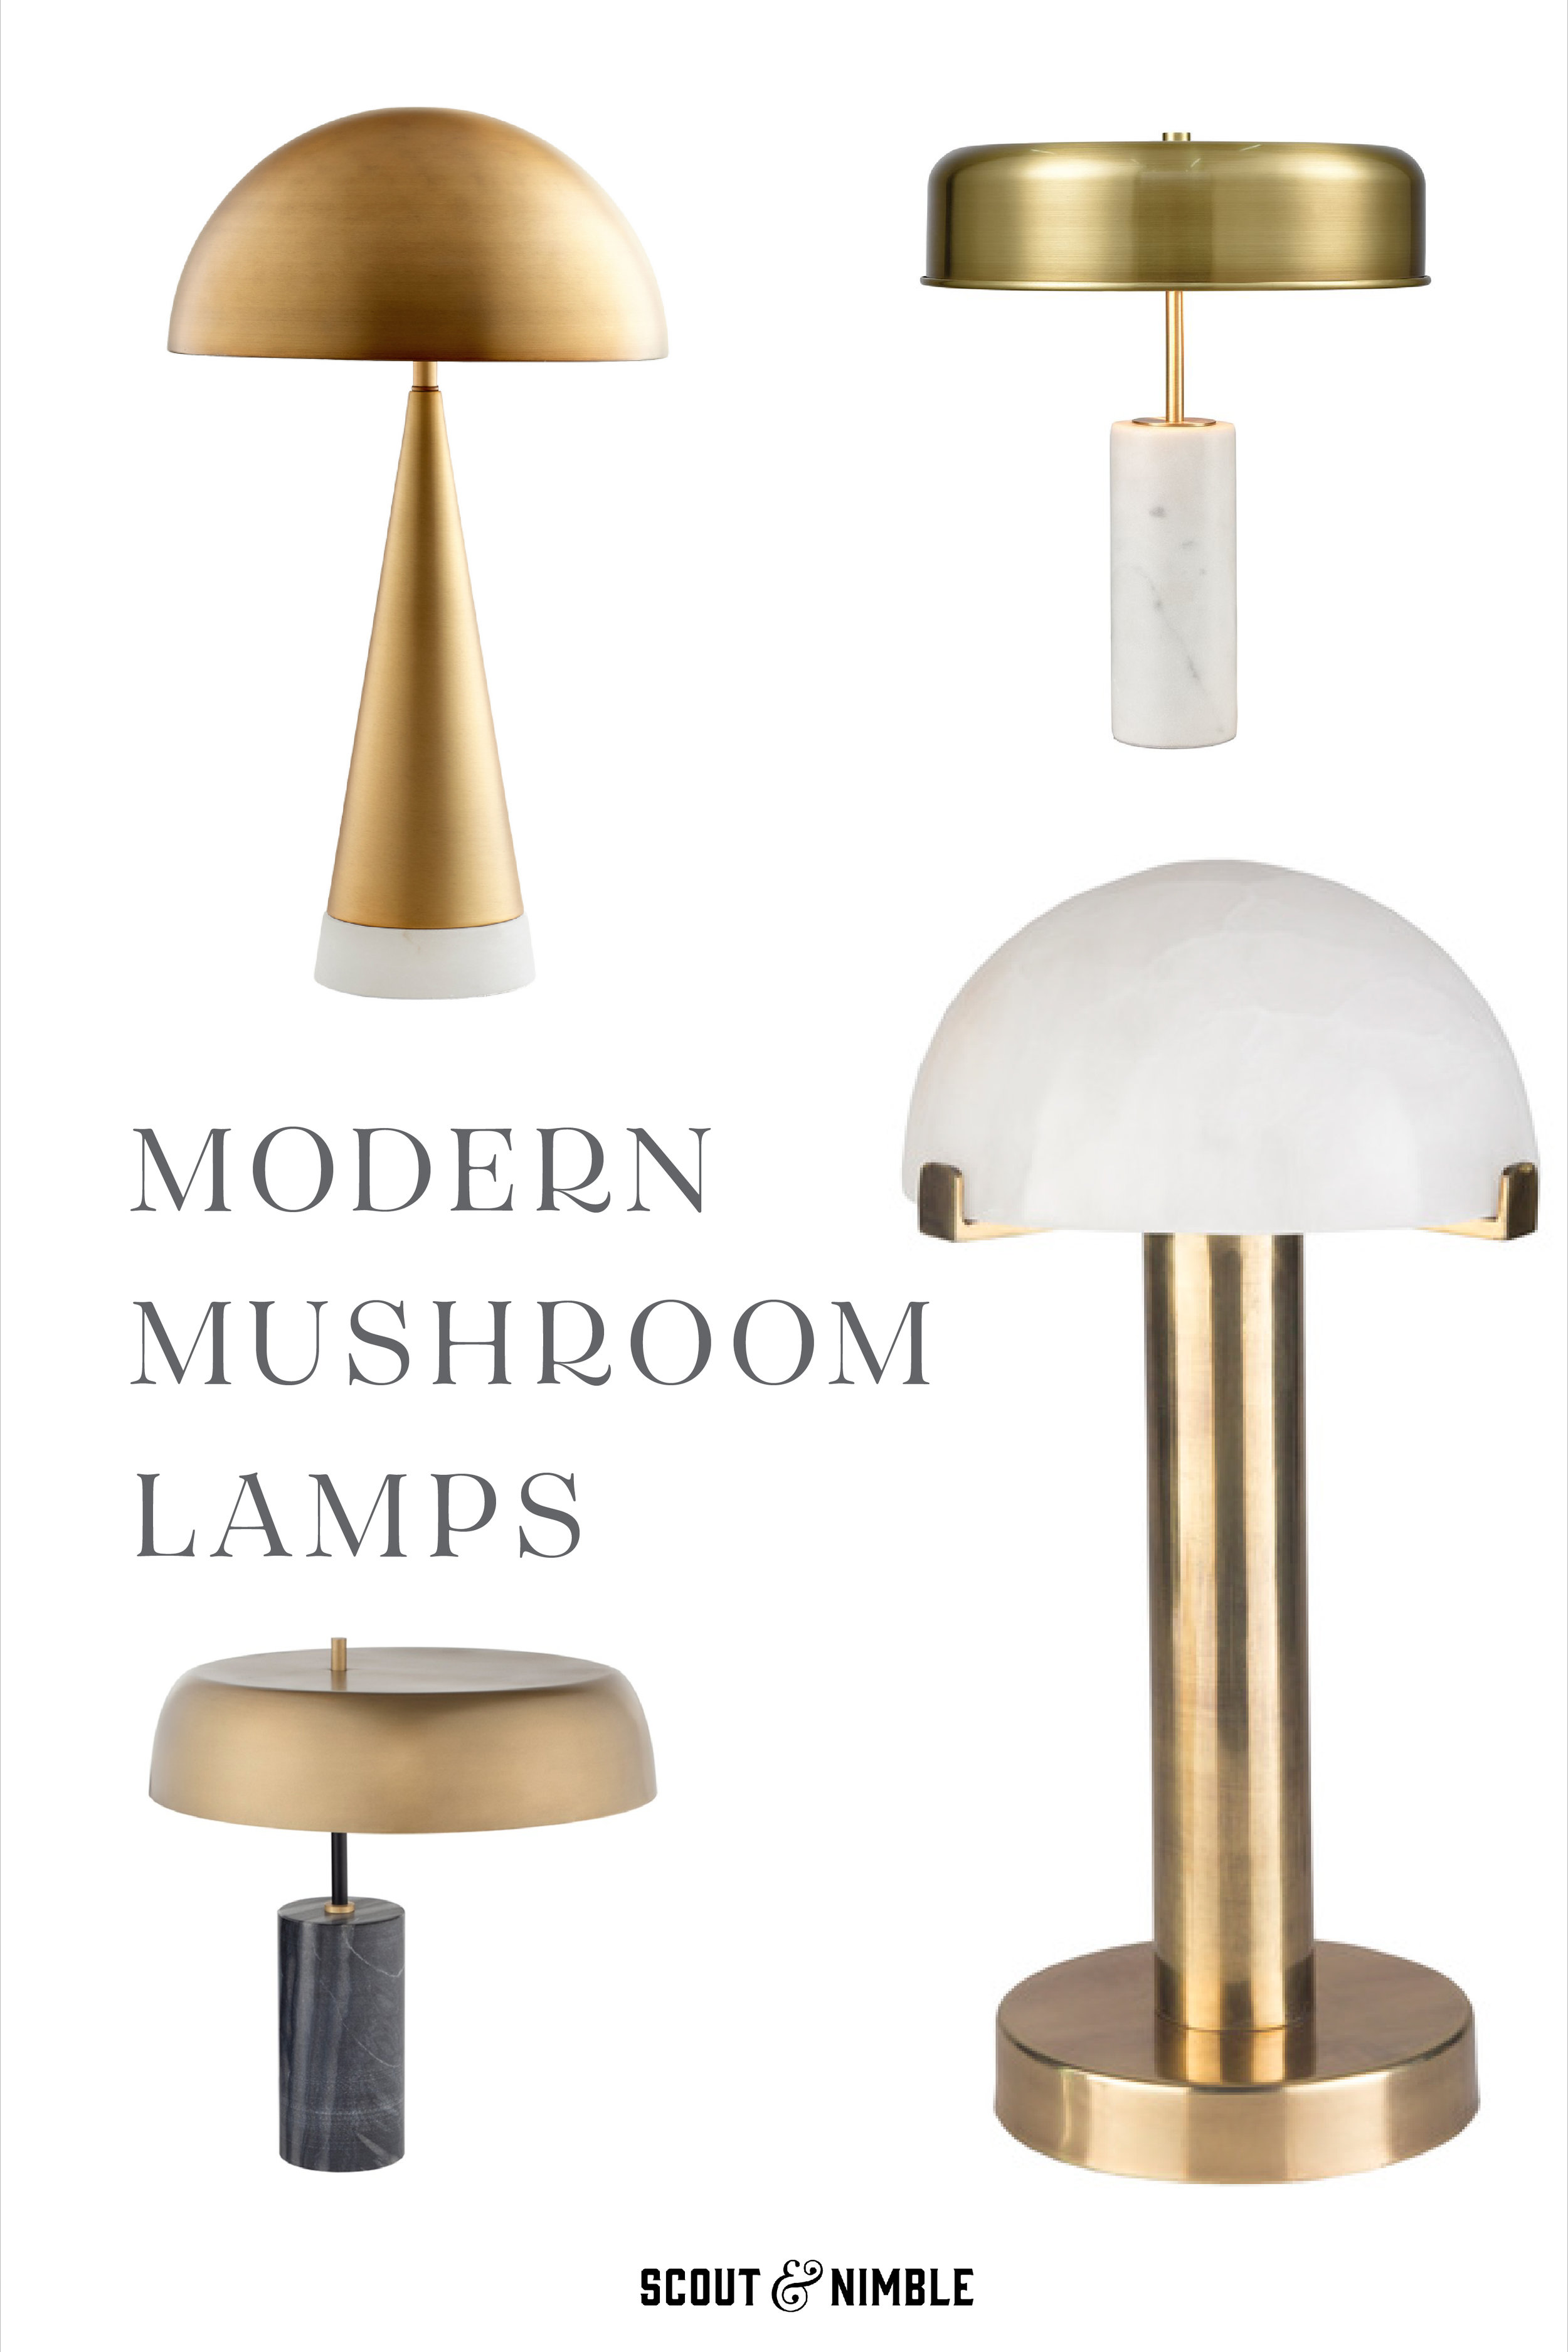 scout_and_nimble_Mushrool_Lamp_Product_Graphics_Color.jpg